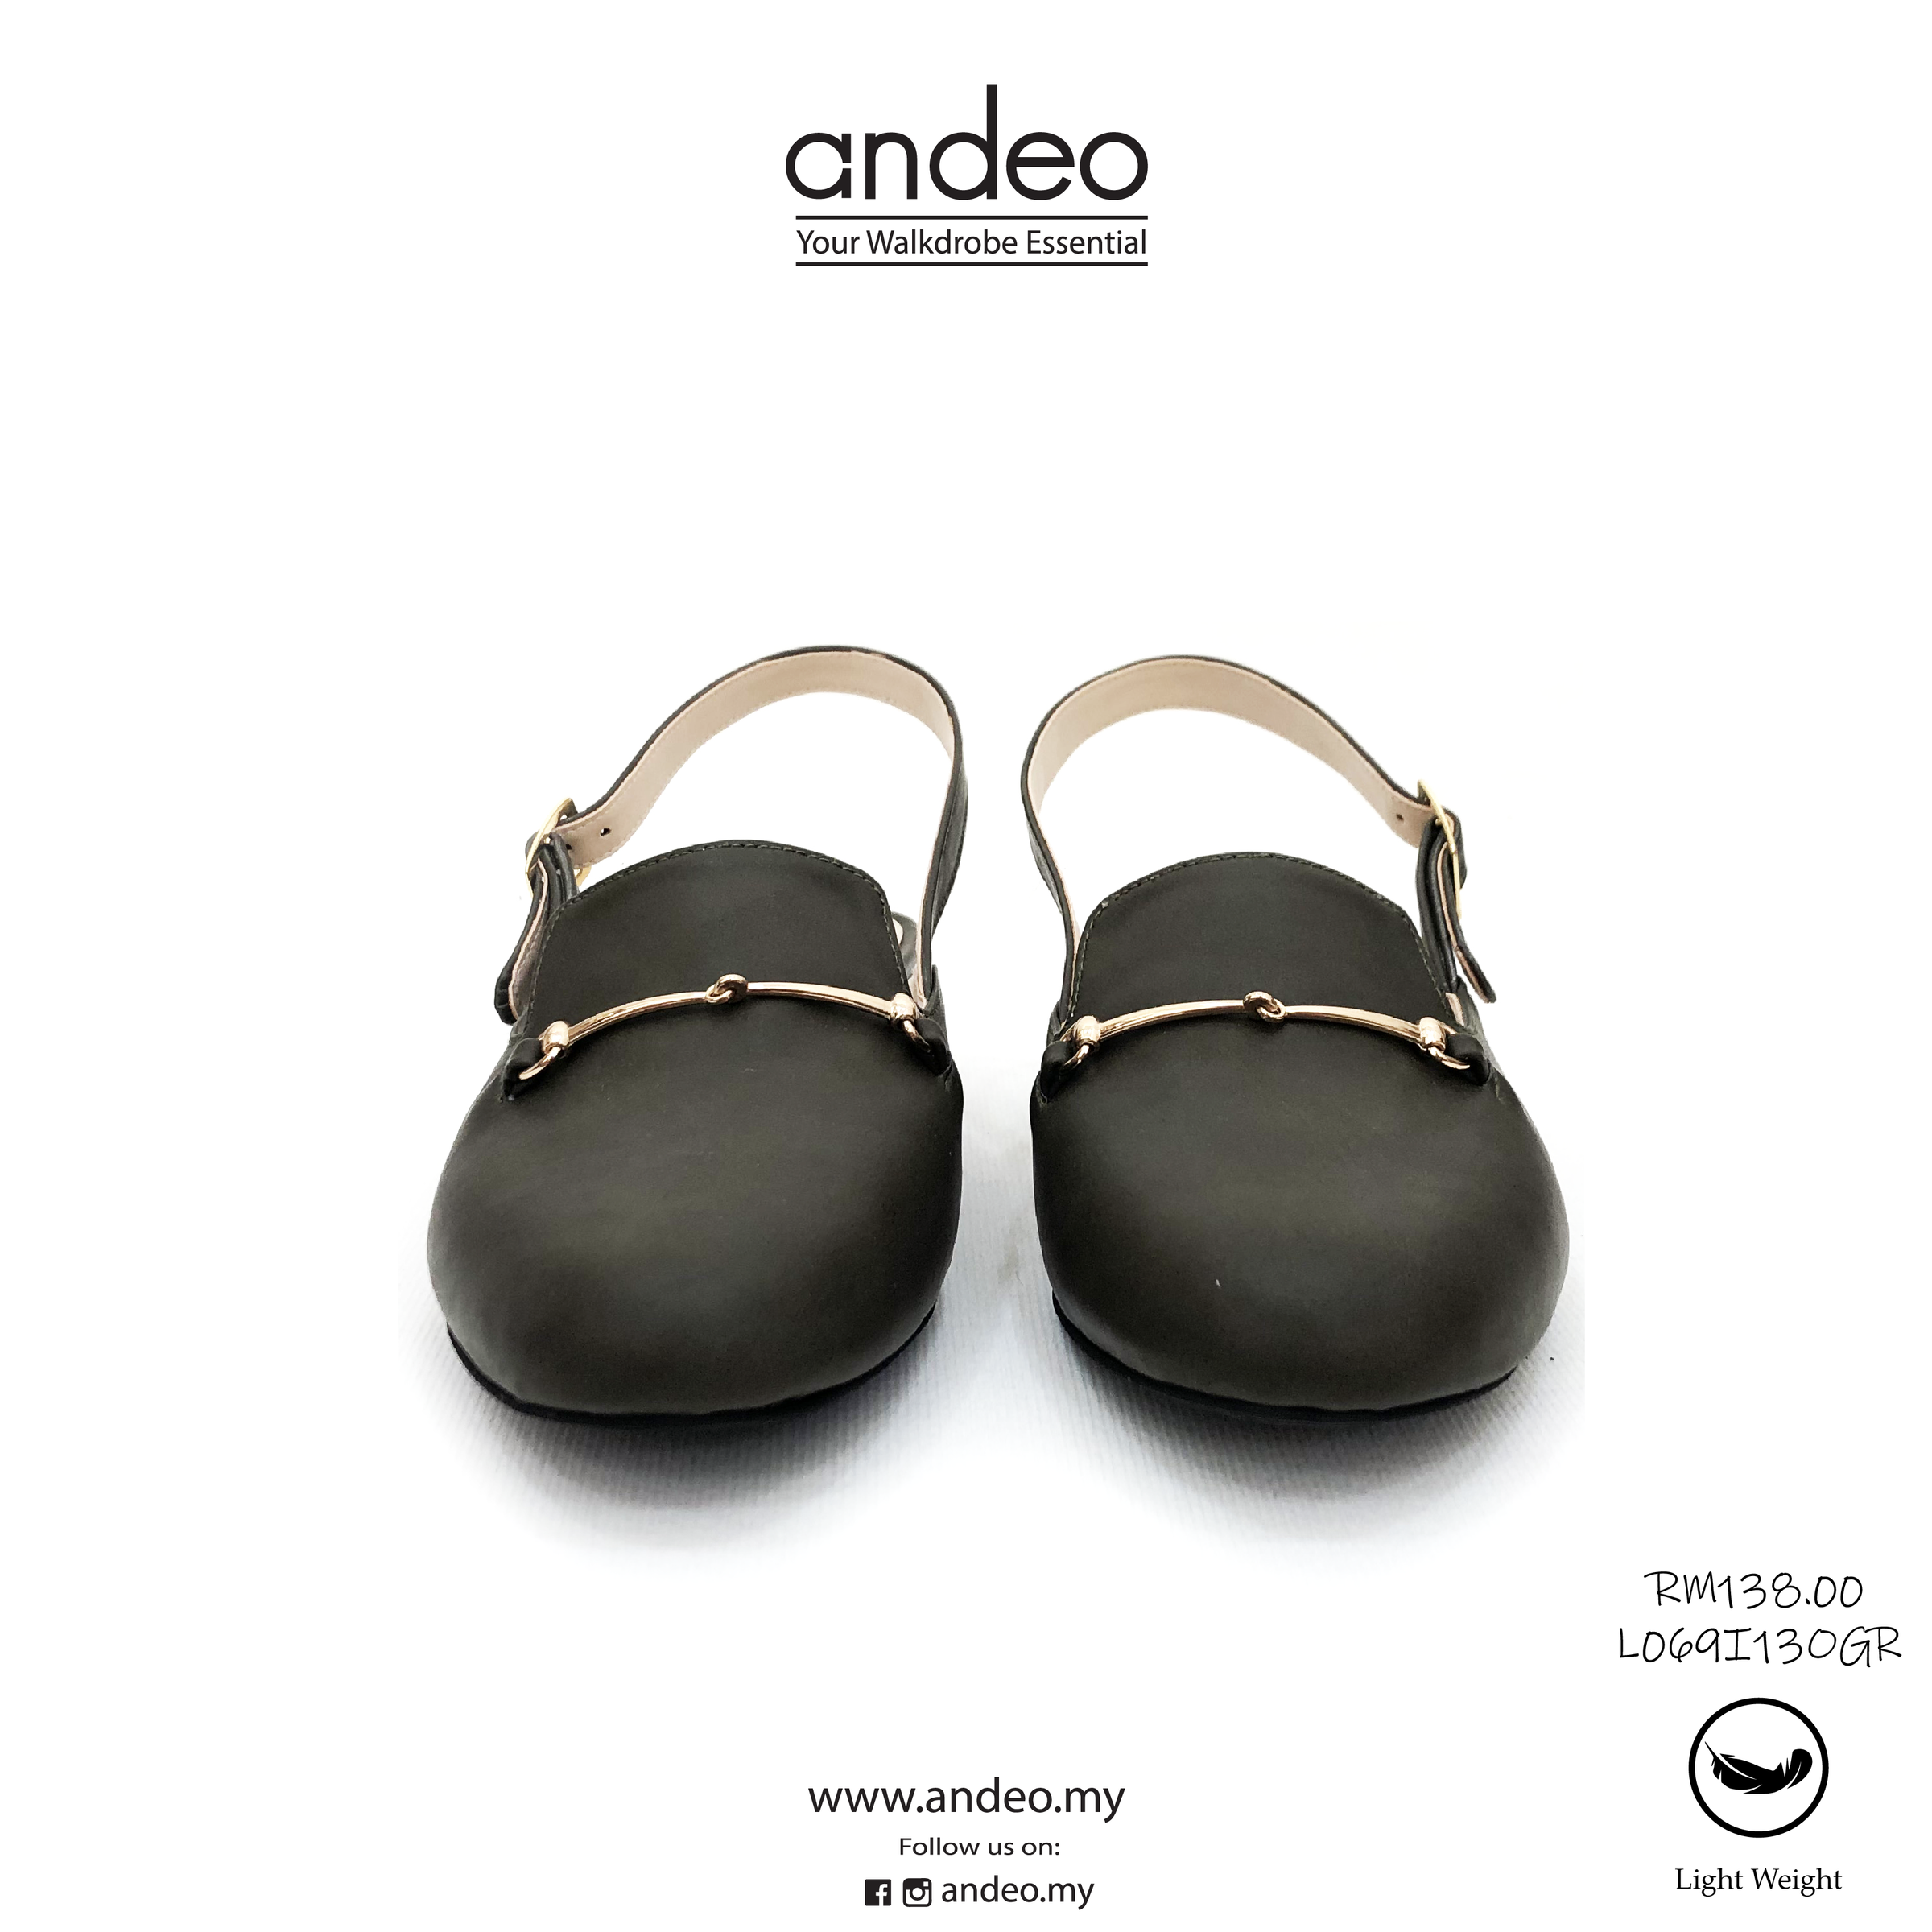 ANDEO FB PRODUCT L069I13-08.png